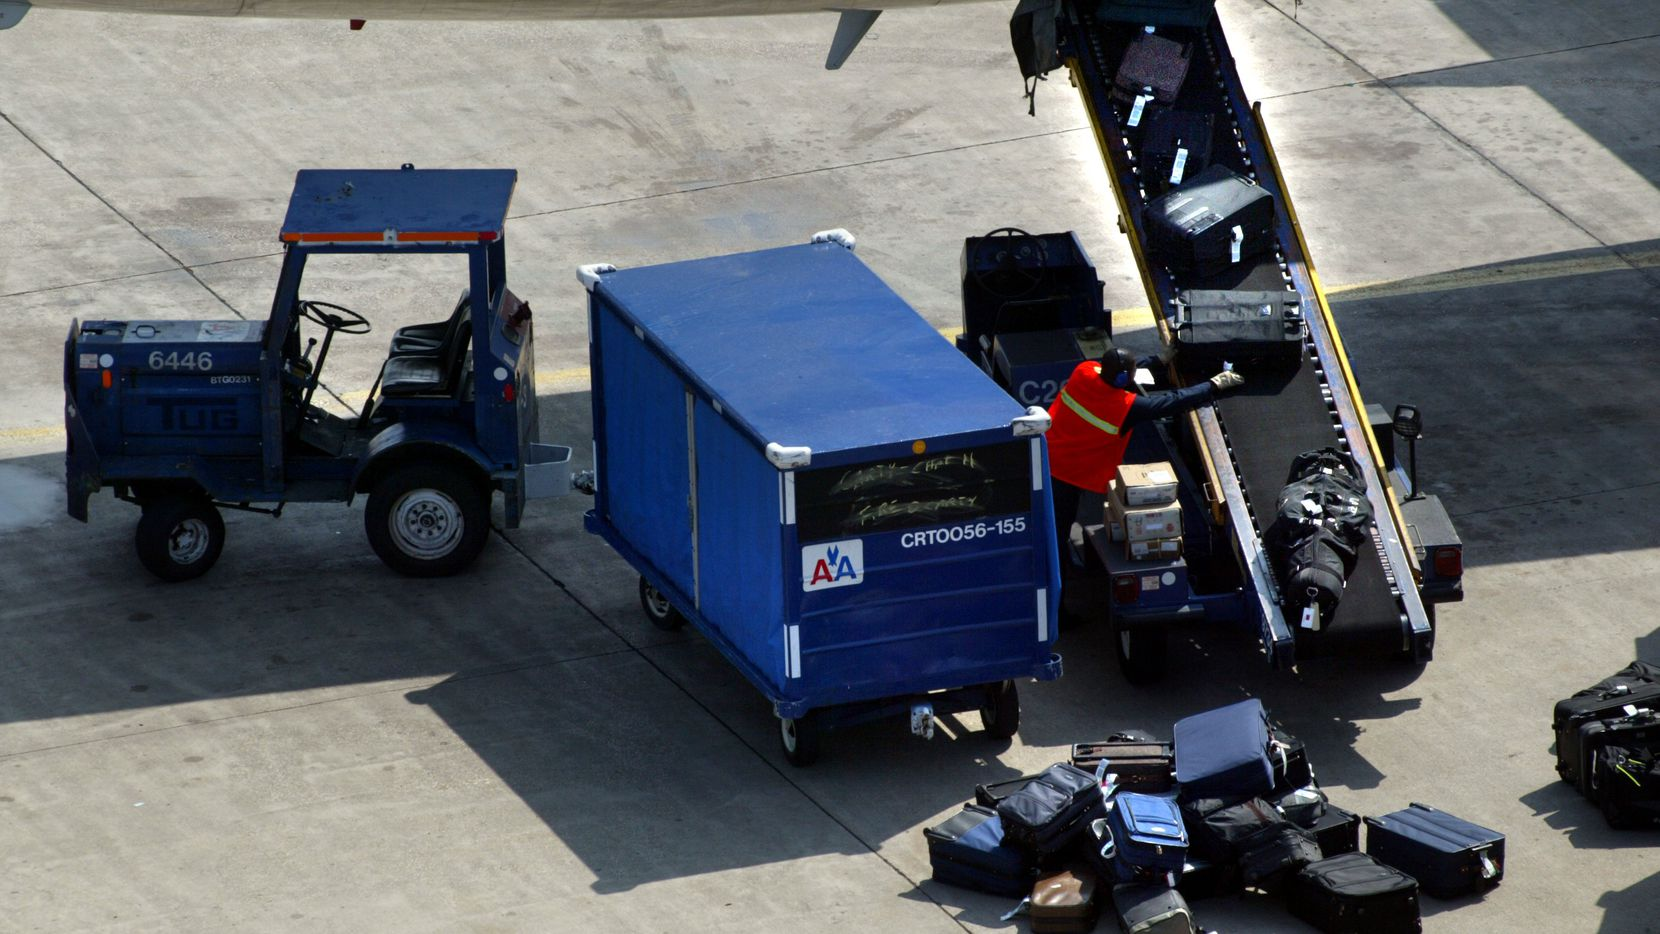 A baggage handler unloads luggage from an American Airlines flight arriving at DFW International Airport.